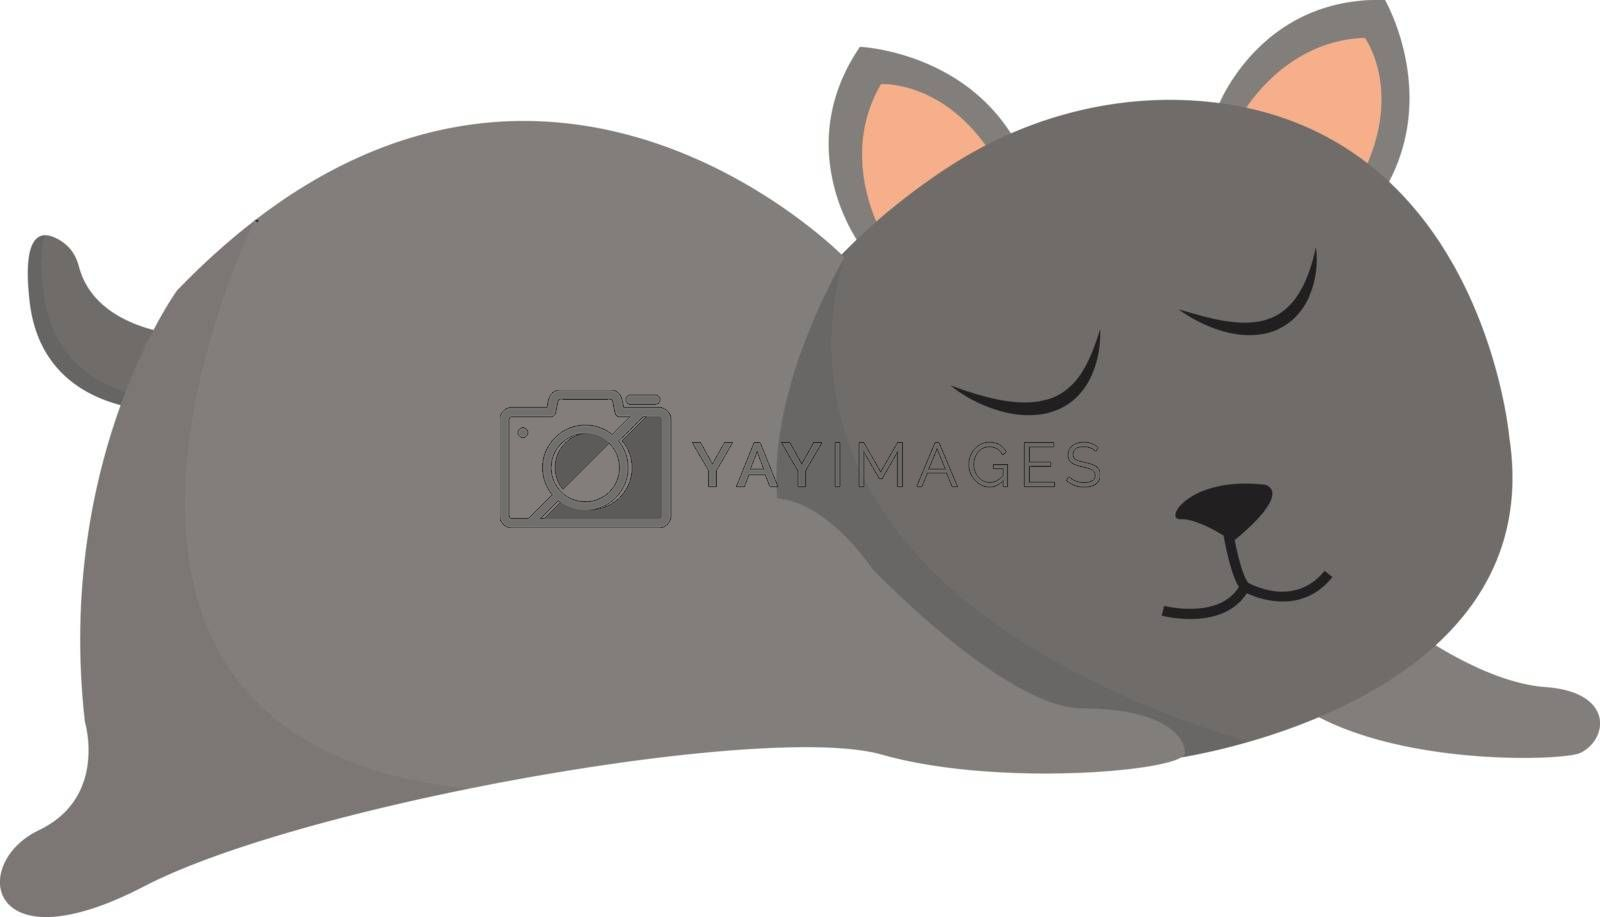 Royalty free image of Clipart of a grey cat sleeping set on isolated white background  by Morphart